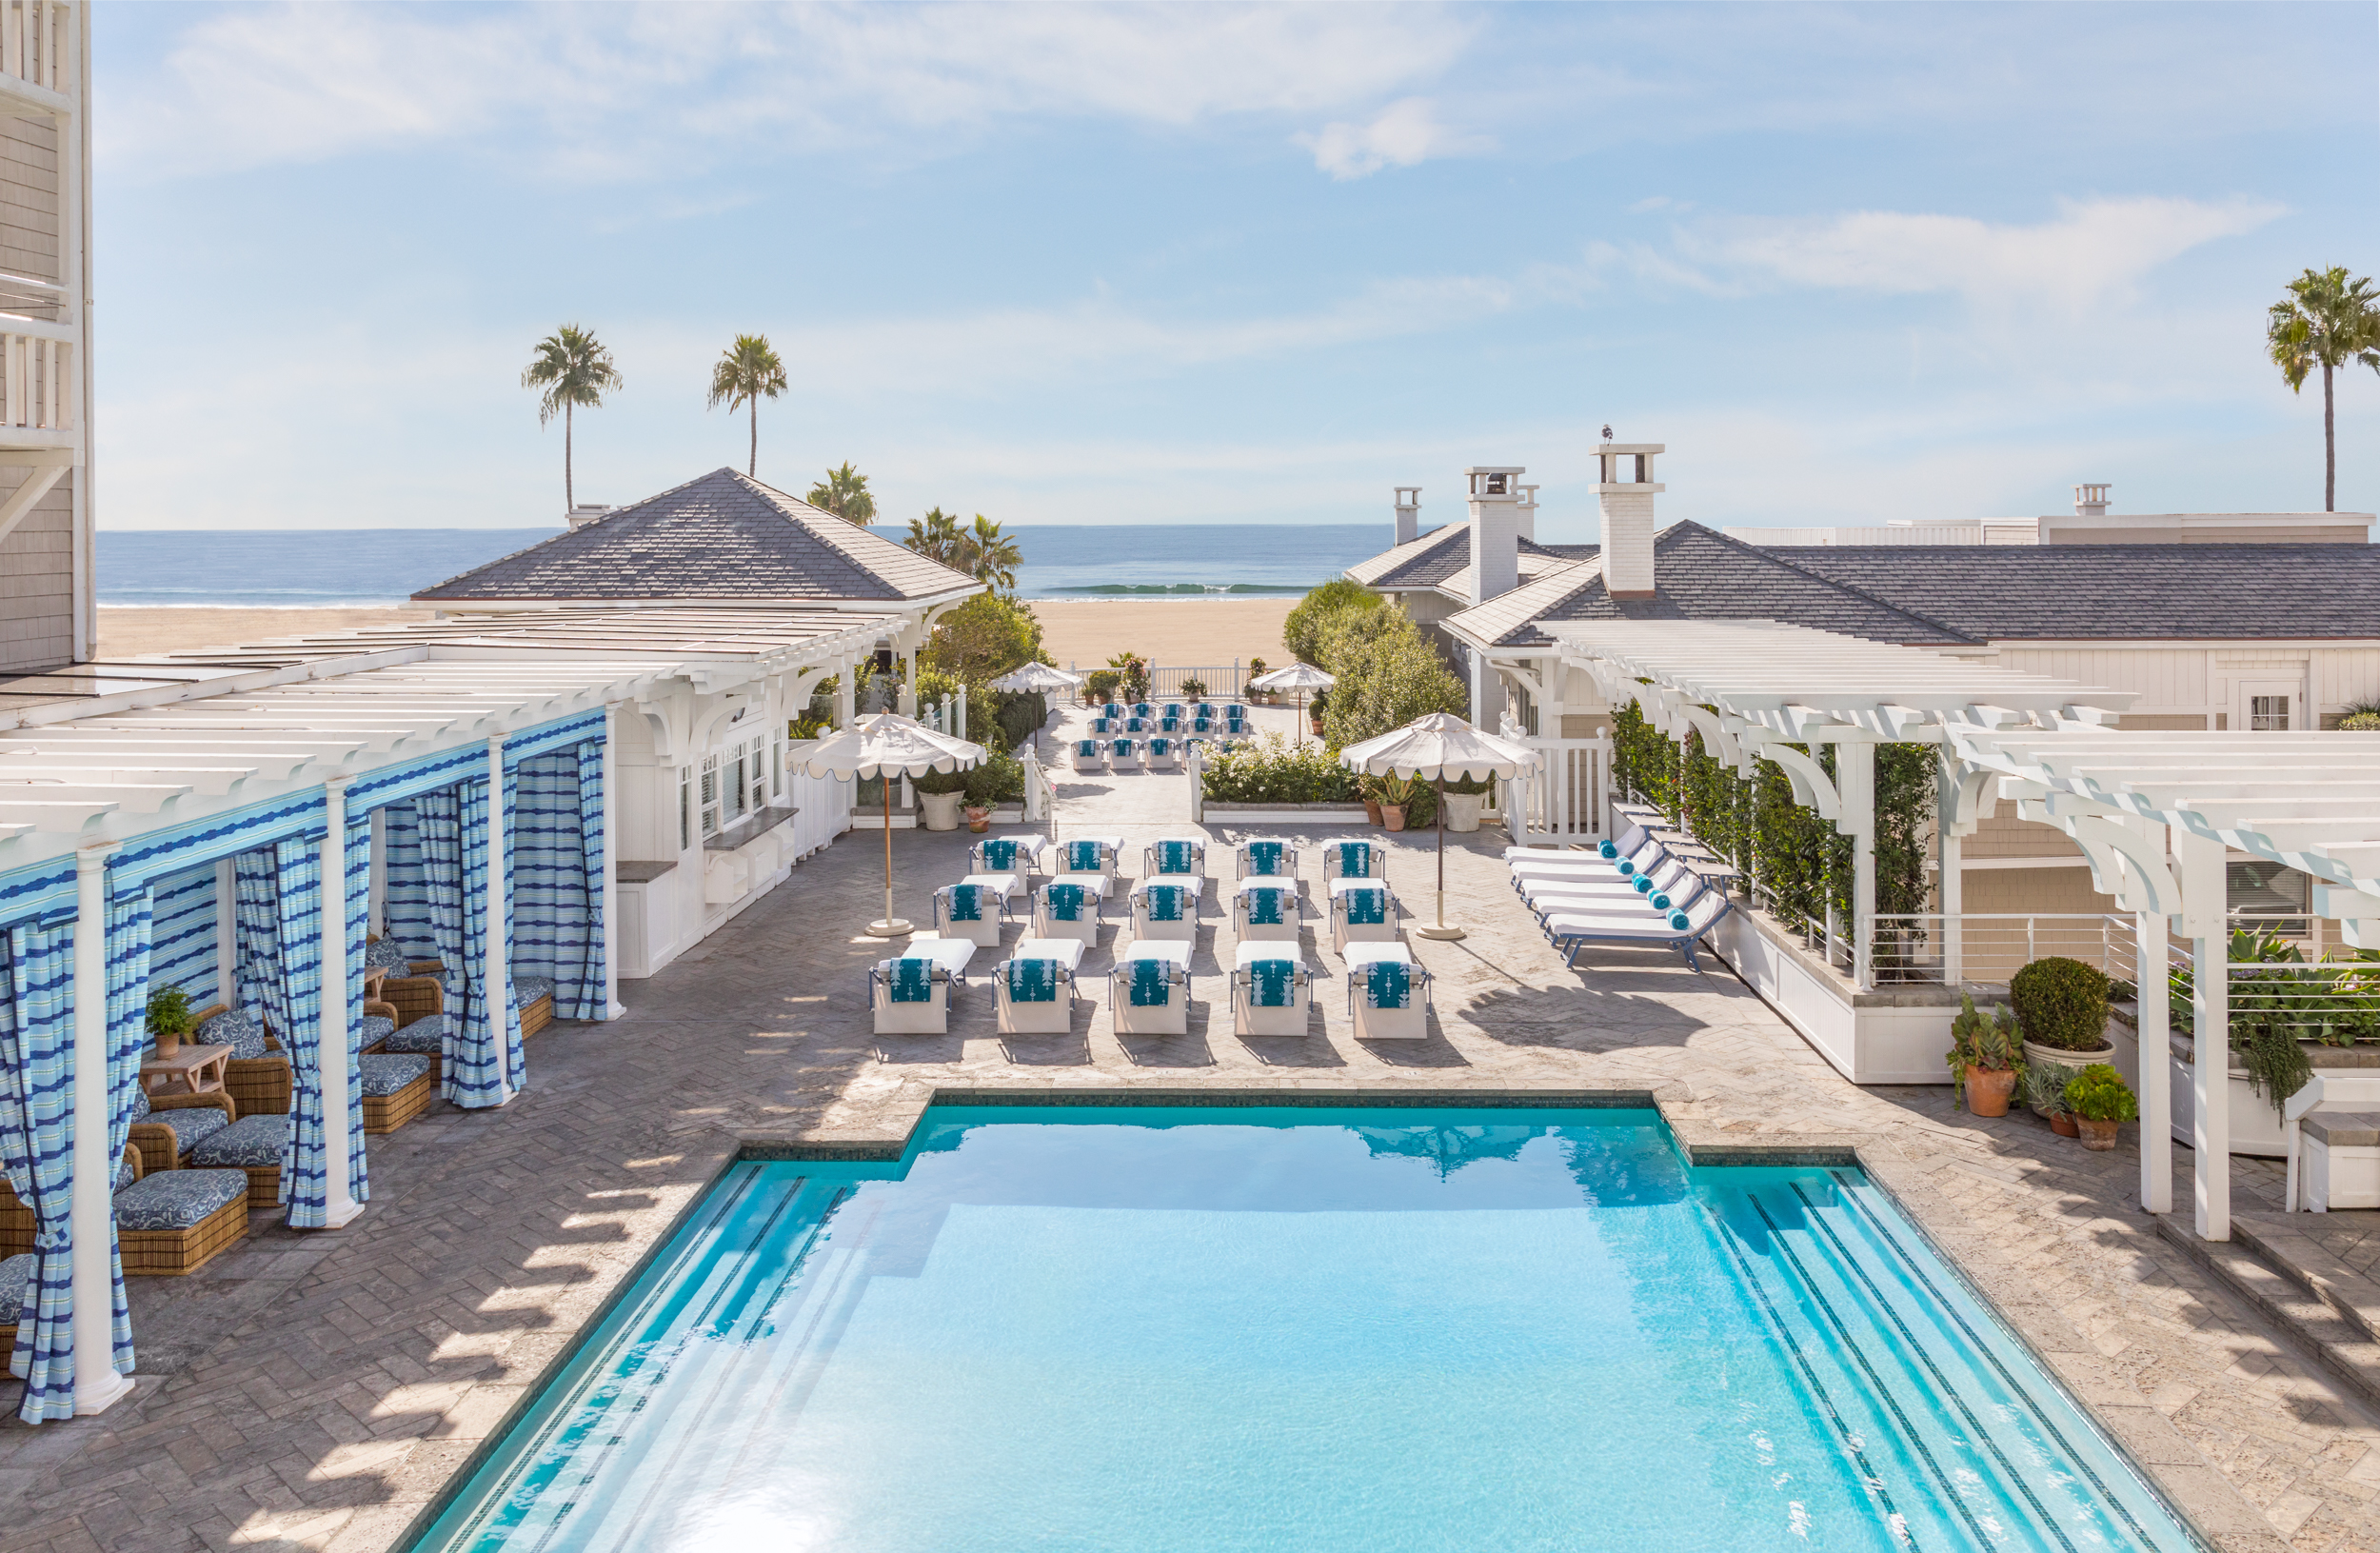 Santa Monica Hotel   Luxury Beach Hotel | The Iconic ...